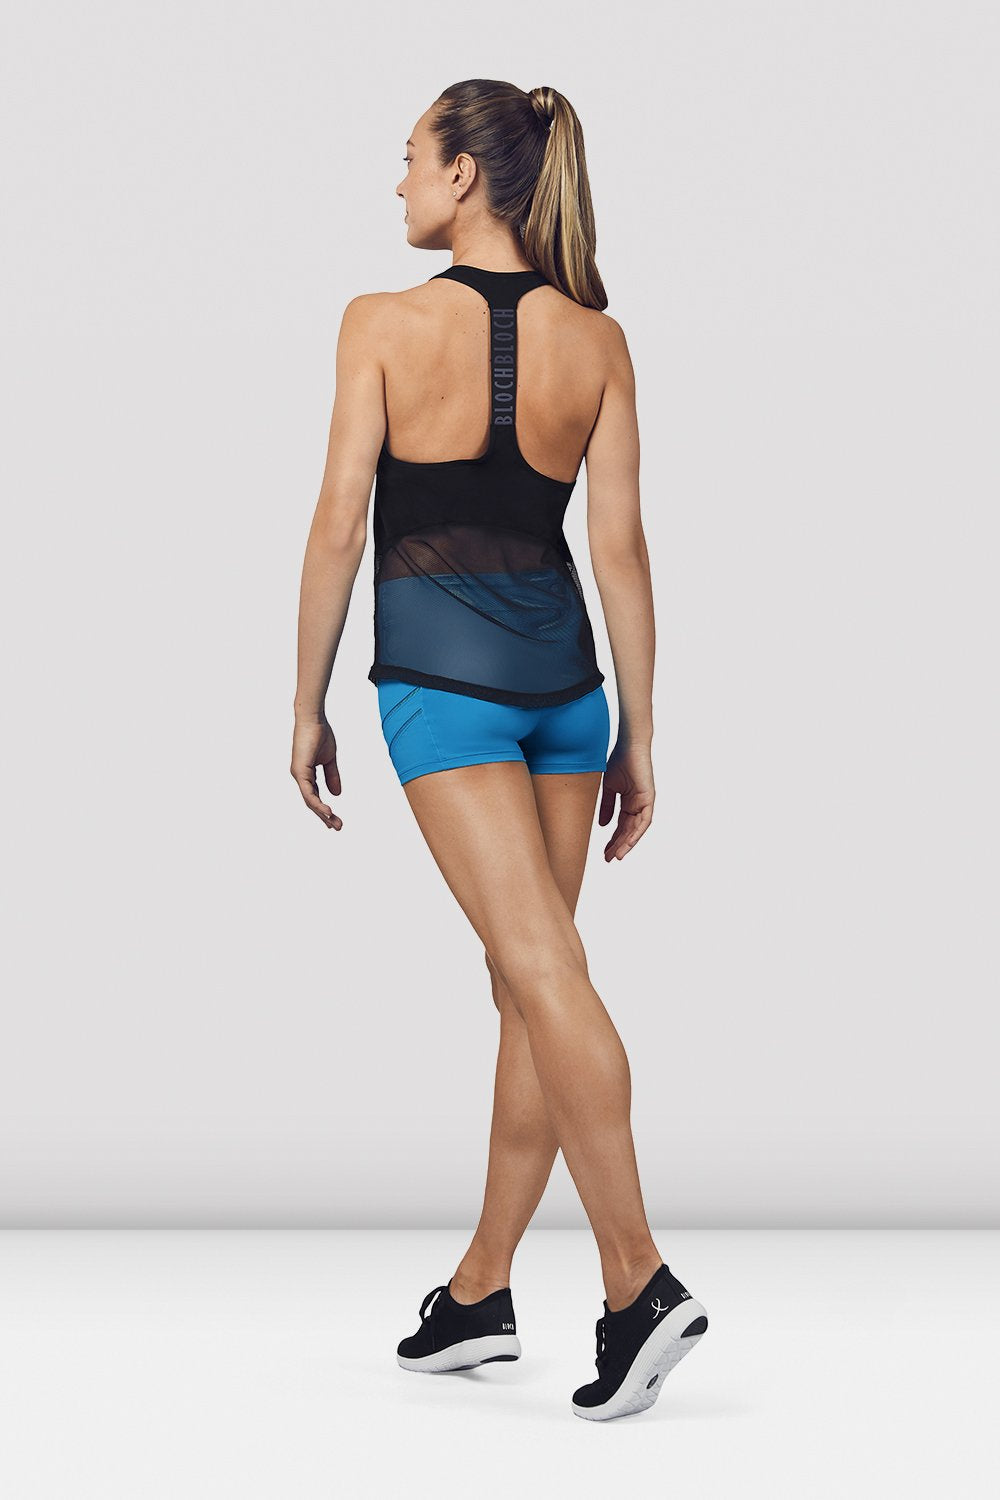 Ladies Mesh Detail Tank Top - BLOCH US